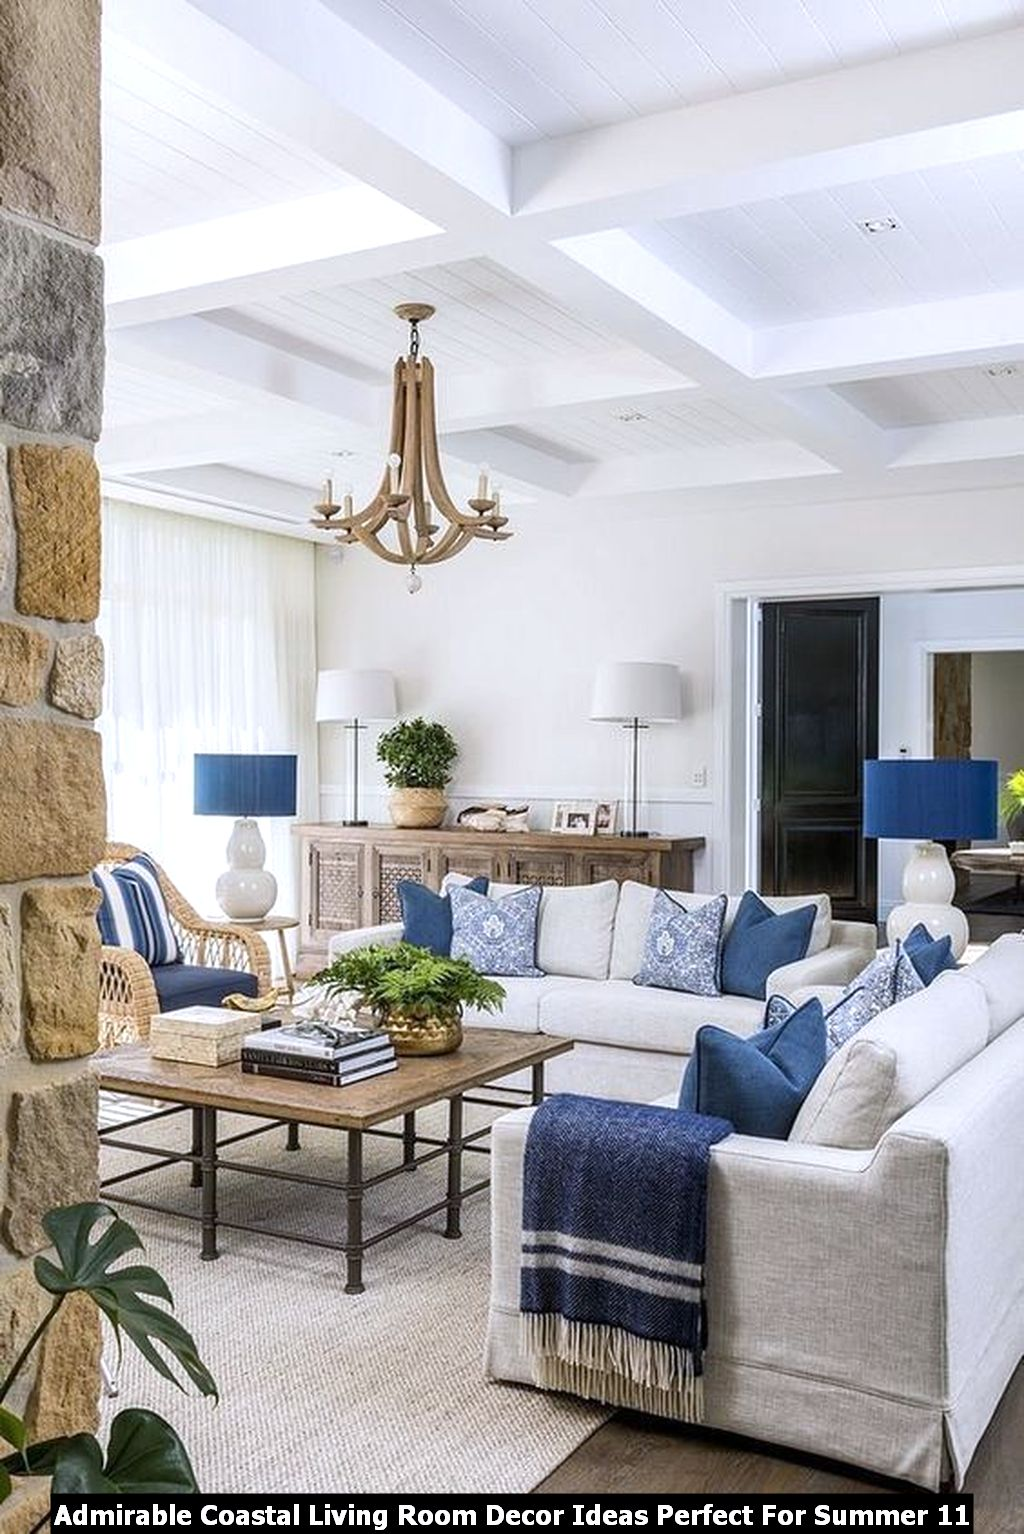 Admirable Coastal Living Room Decor Ideas Perfect For Summer 11